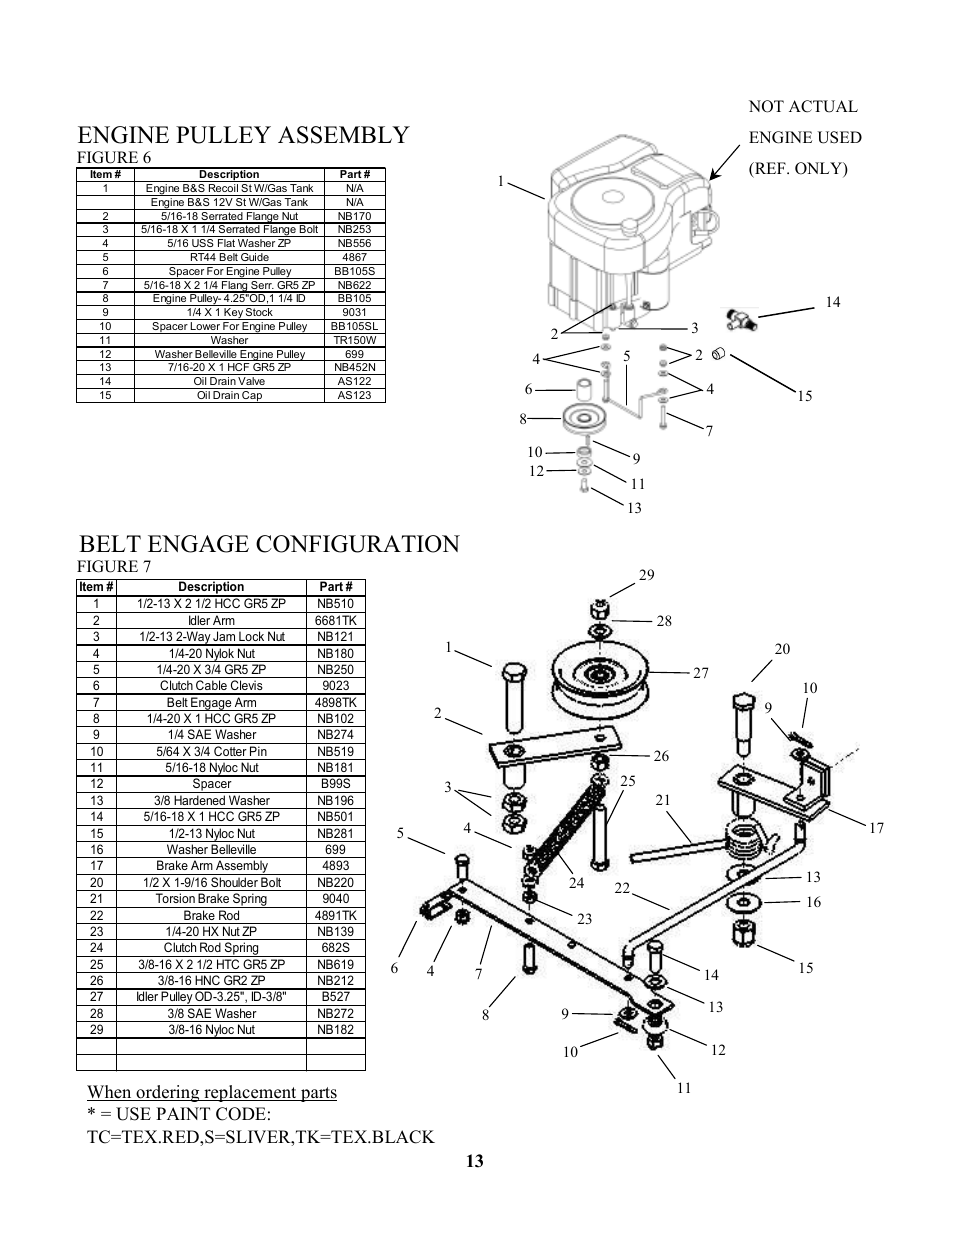 Engine pulley assembly, Belt engage configuration, Figure